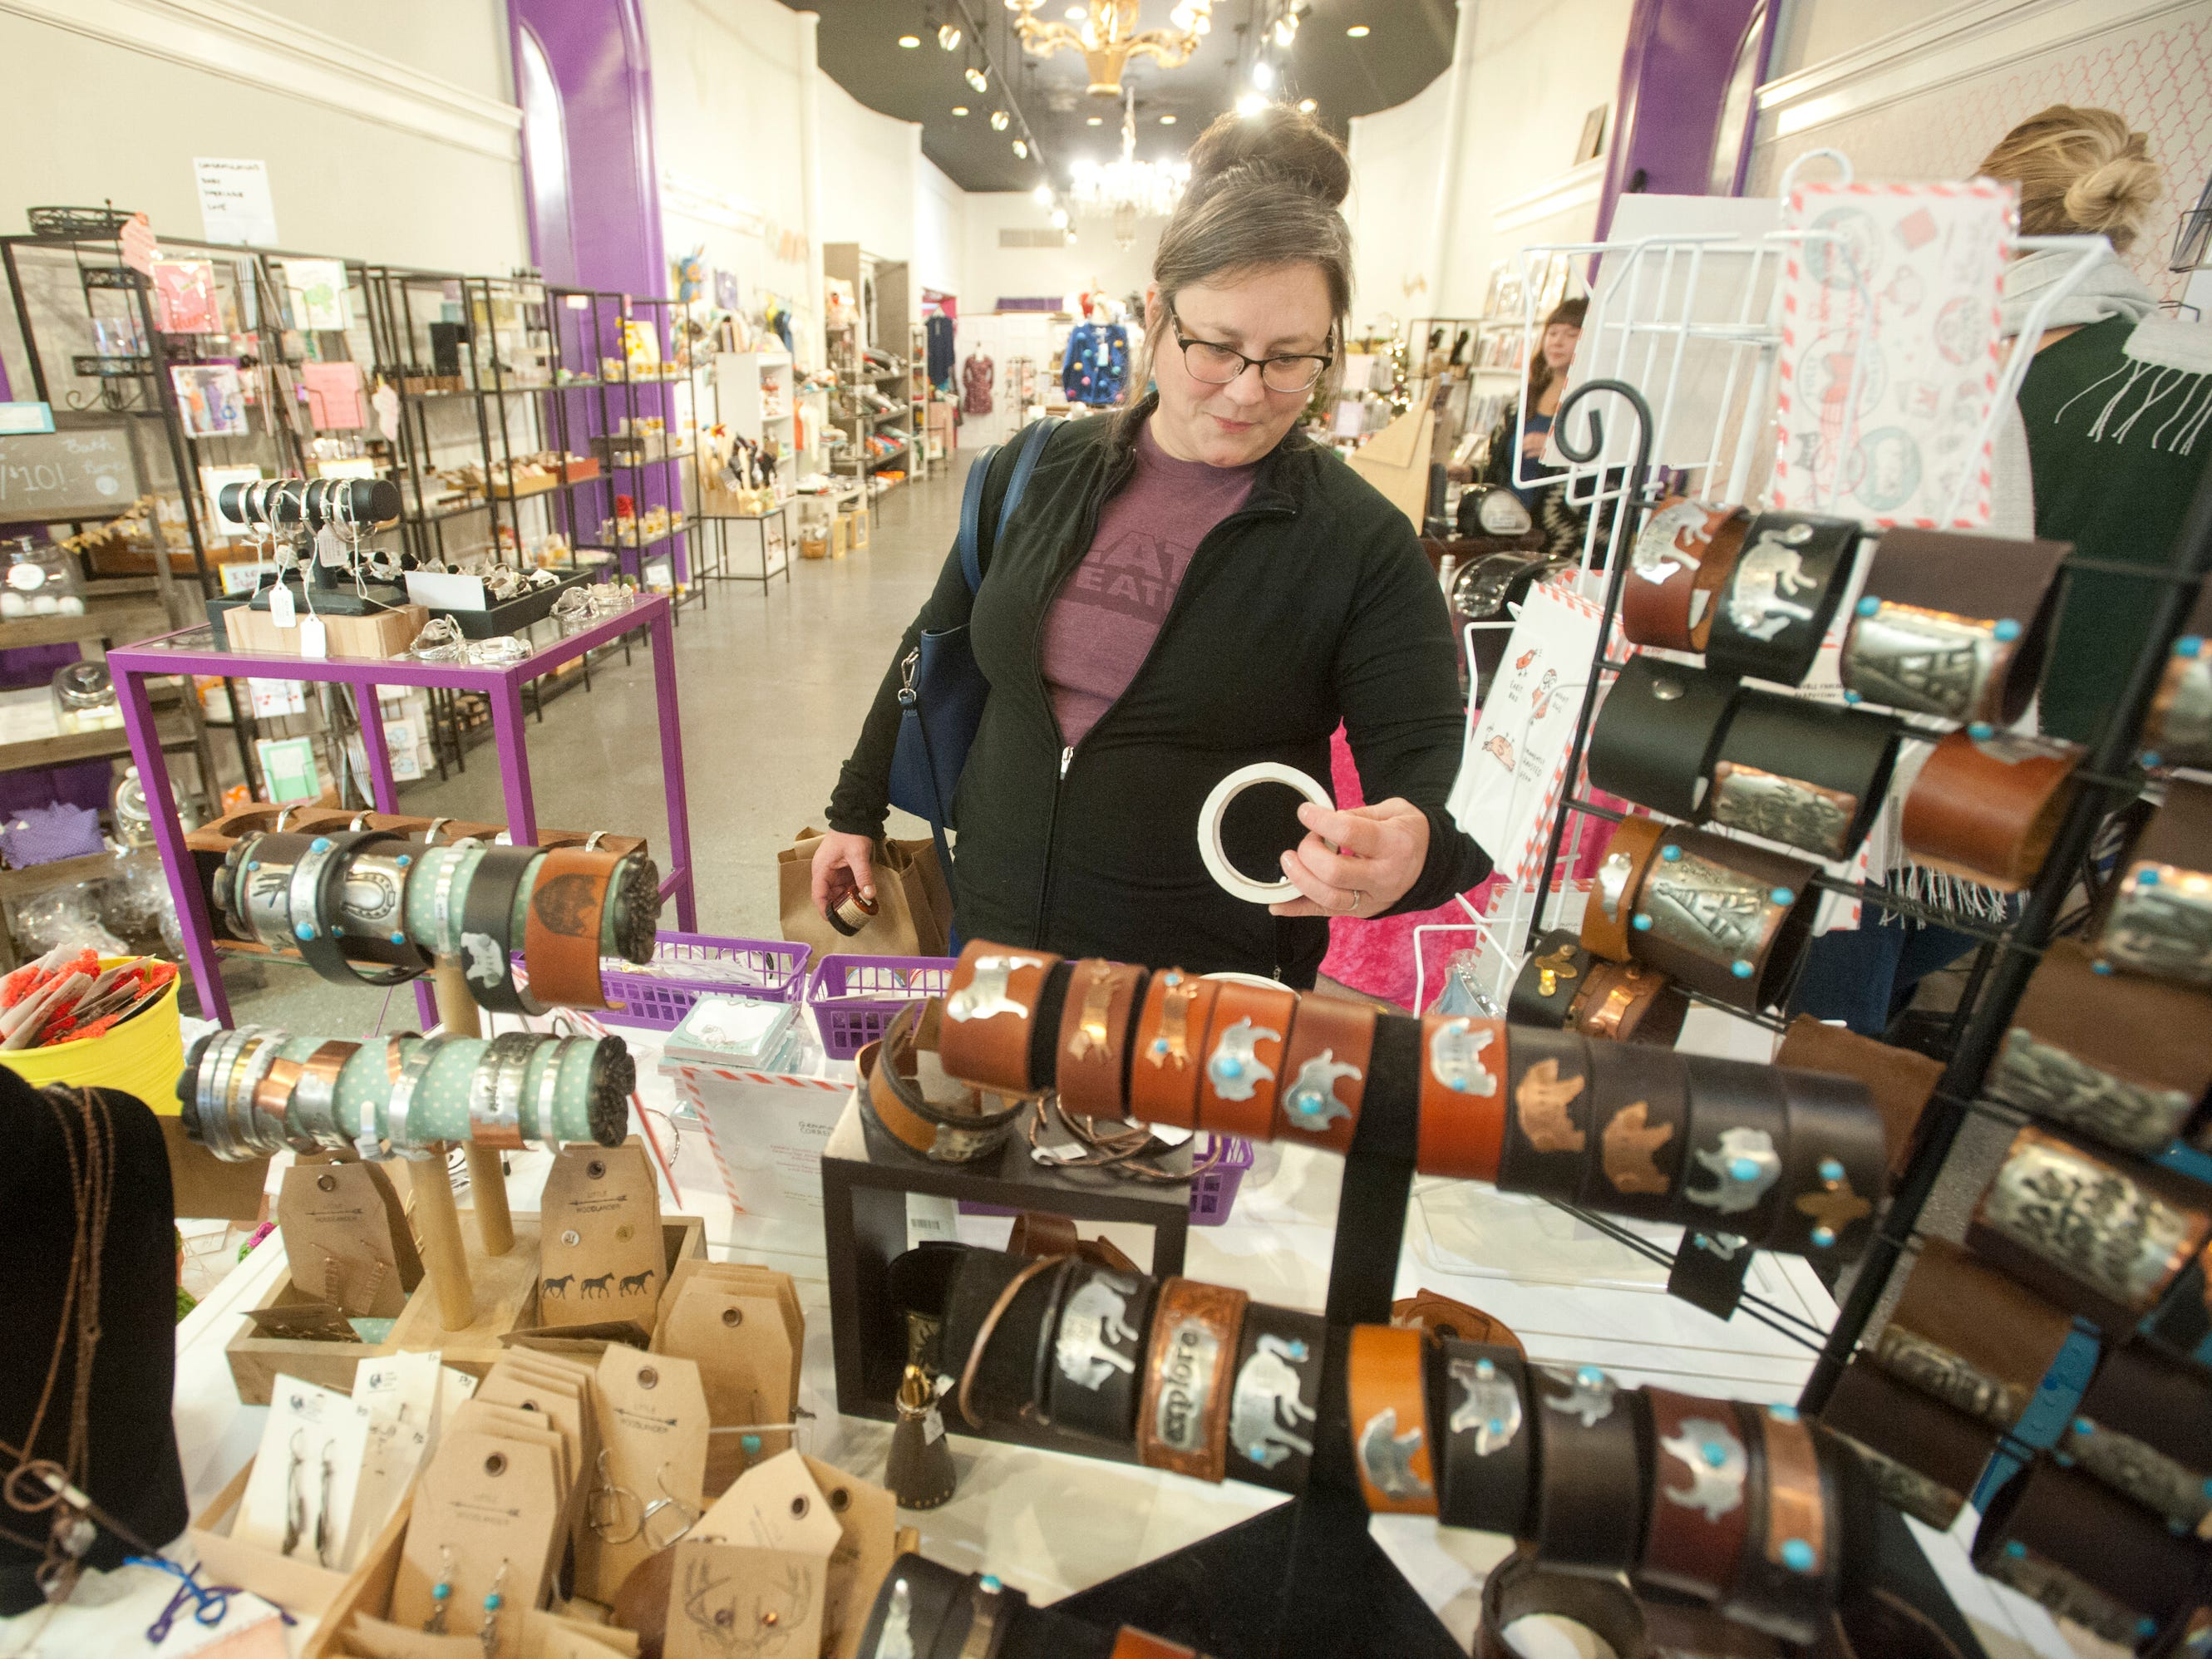 Stephanie Potter of Louisville looks over some of the bracelets at Block Party on south 4th Street during Louisville's Small Business Saturday. 24 November 2018